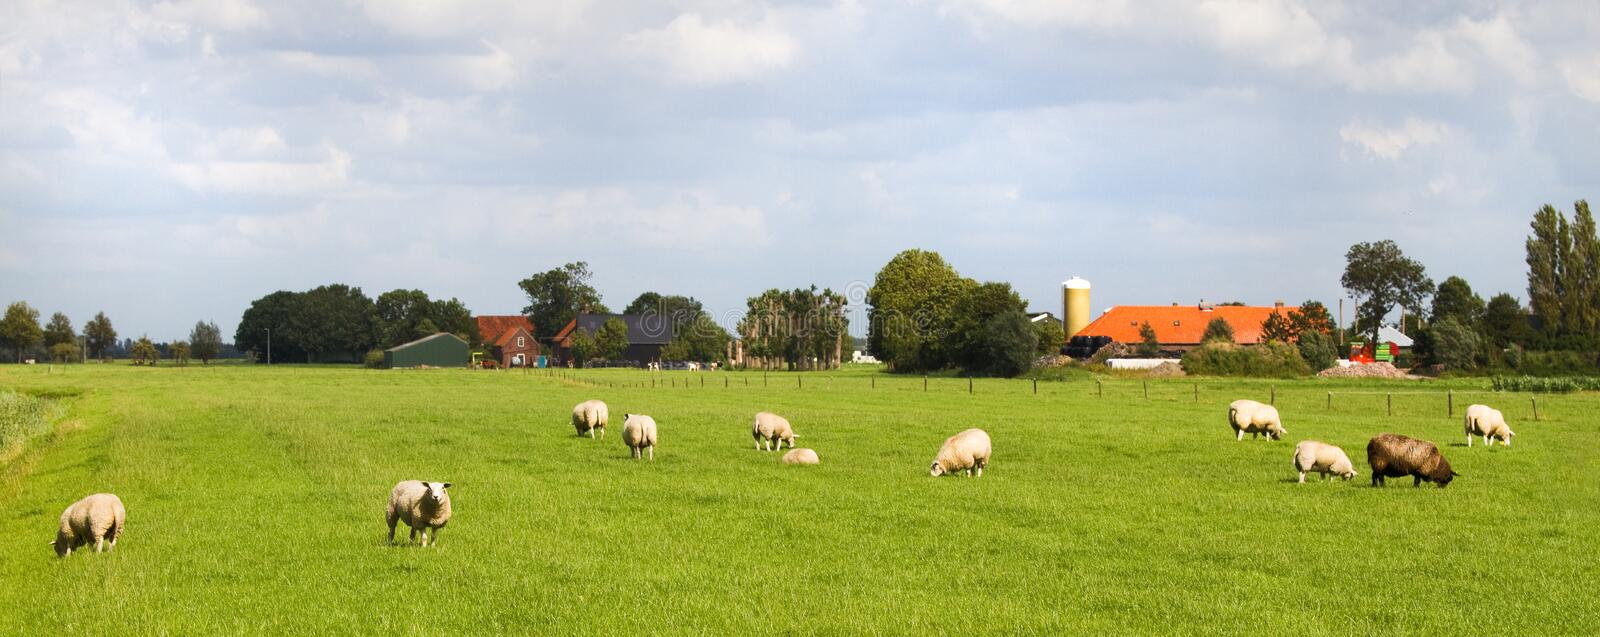 Sheep And Farms In Dutch Landscape Stock Photo